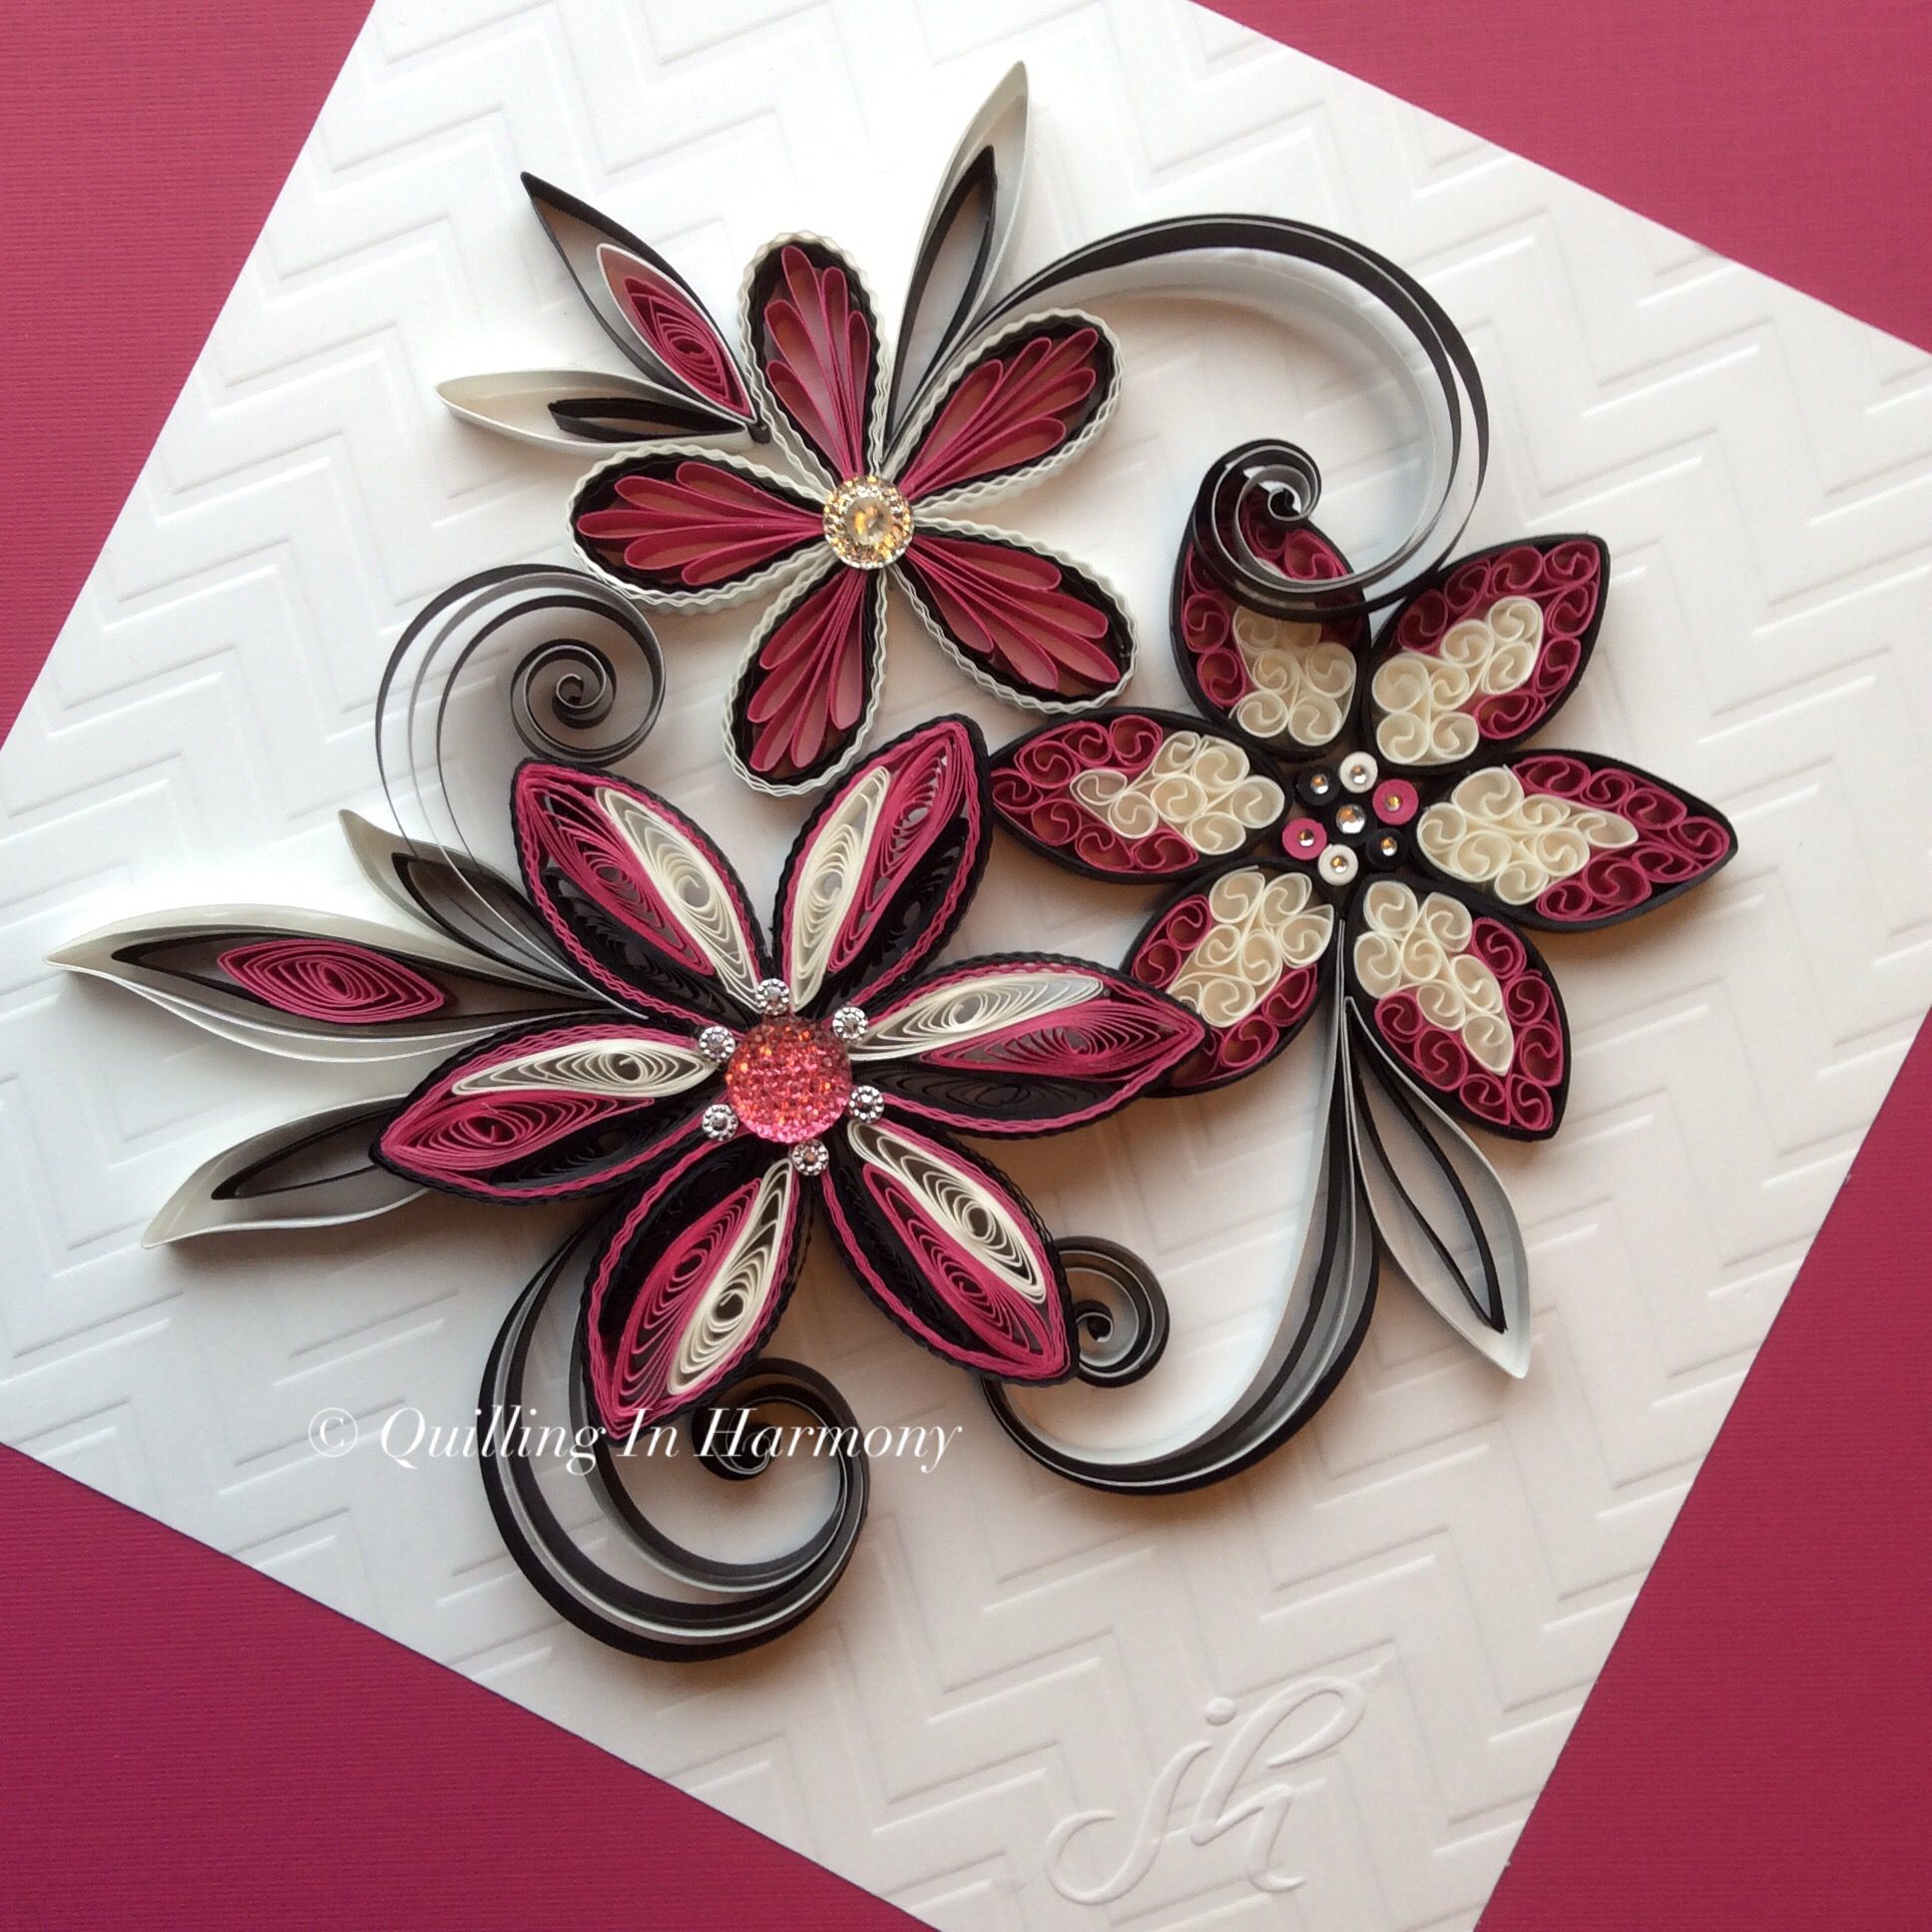 """Quilling """"Raspberry Flowers""""© 8""""x8"""" (20cmx20cm). Hand crafted paper artwork for sale by Jan and Shannon Howard. For custom orders please contact us at quilling_in_harmony@hotmail.com"""